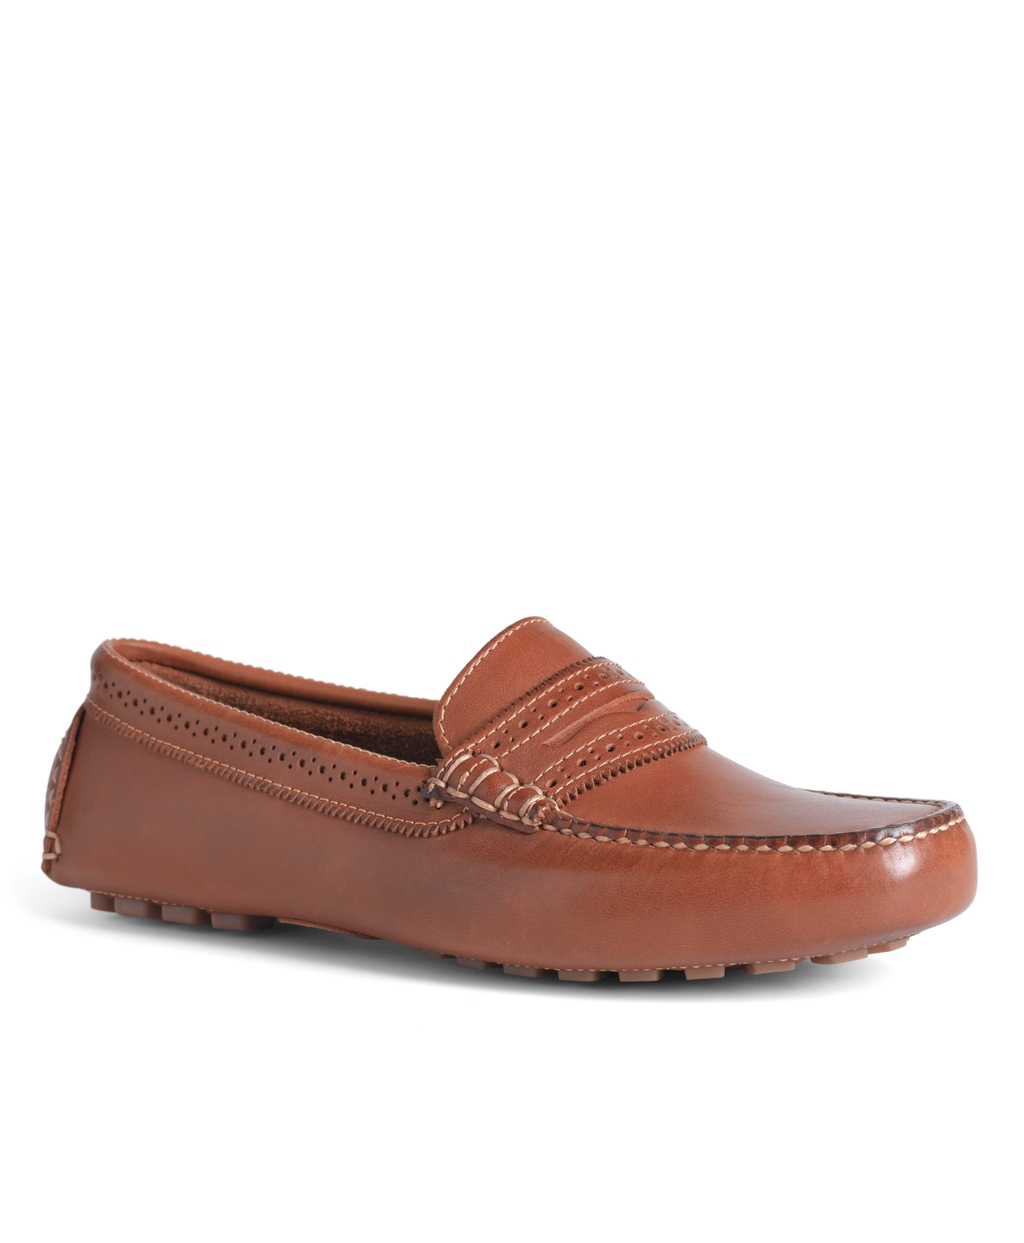 Brooks Brothers Burnished Calfskin Driver Shoes in Brown (tan